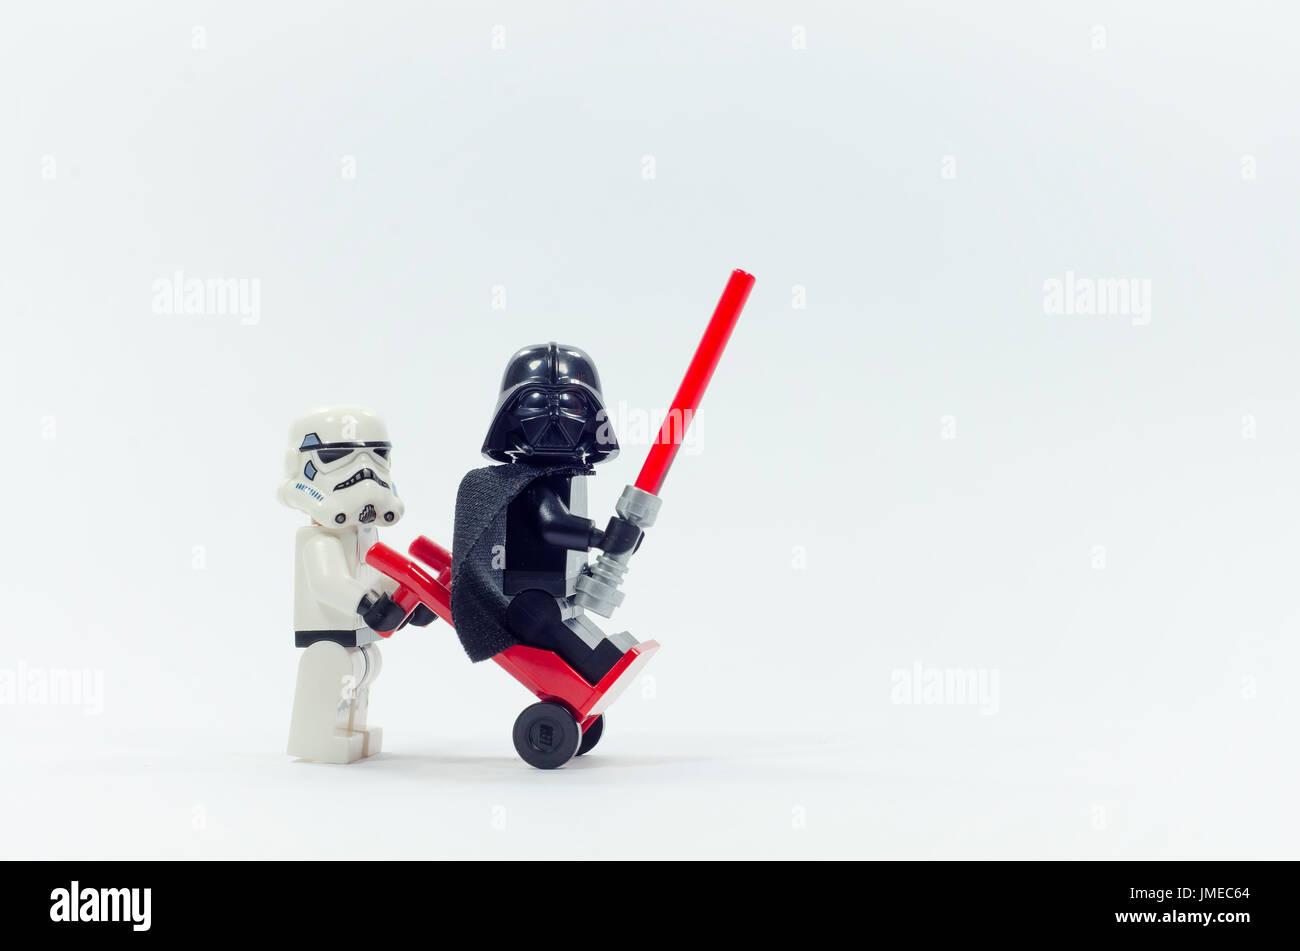 lego darth vader sitting on trolley while storm trooper push it. isolated on white background. - Stock Image